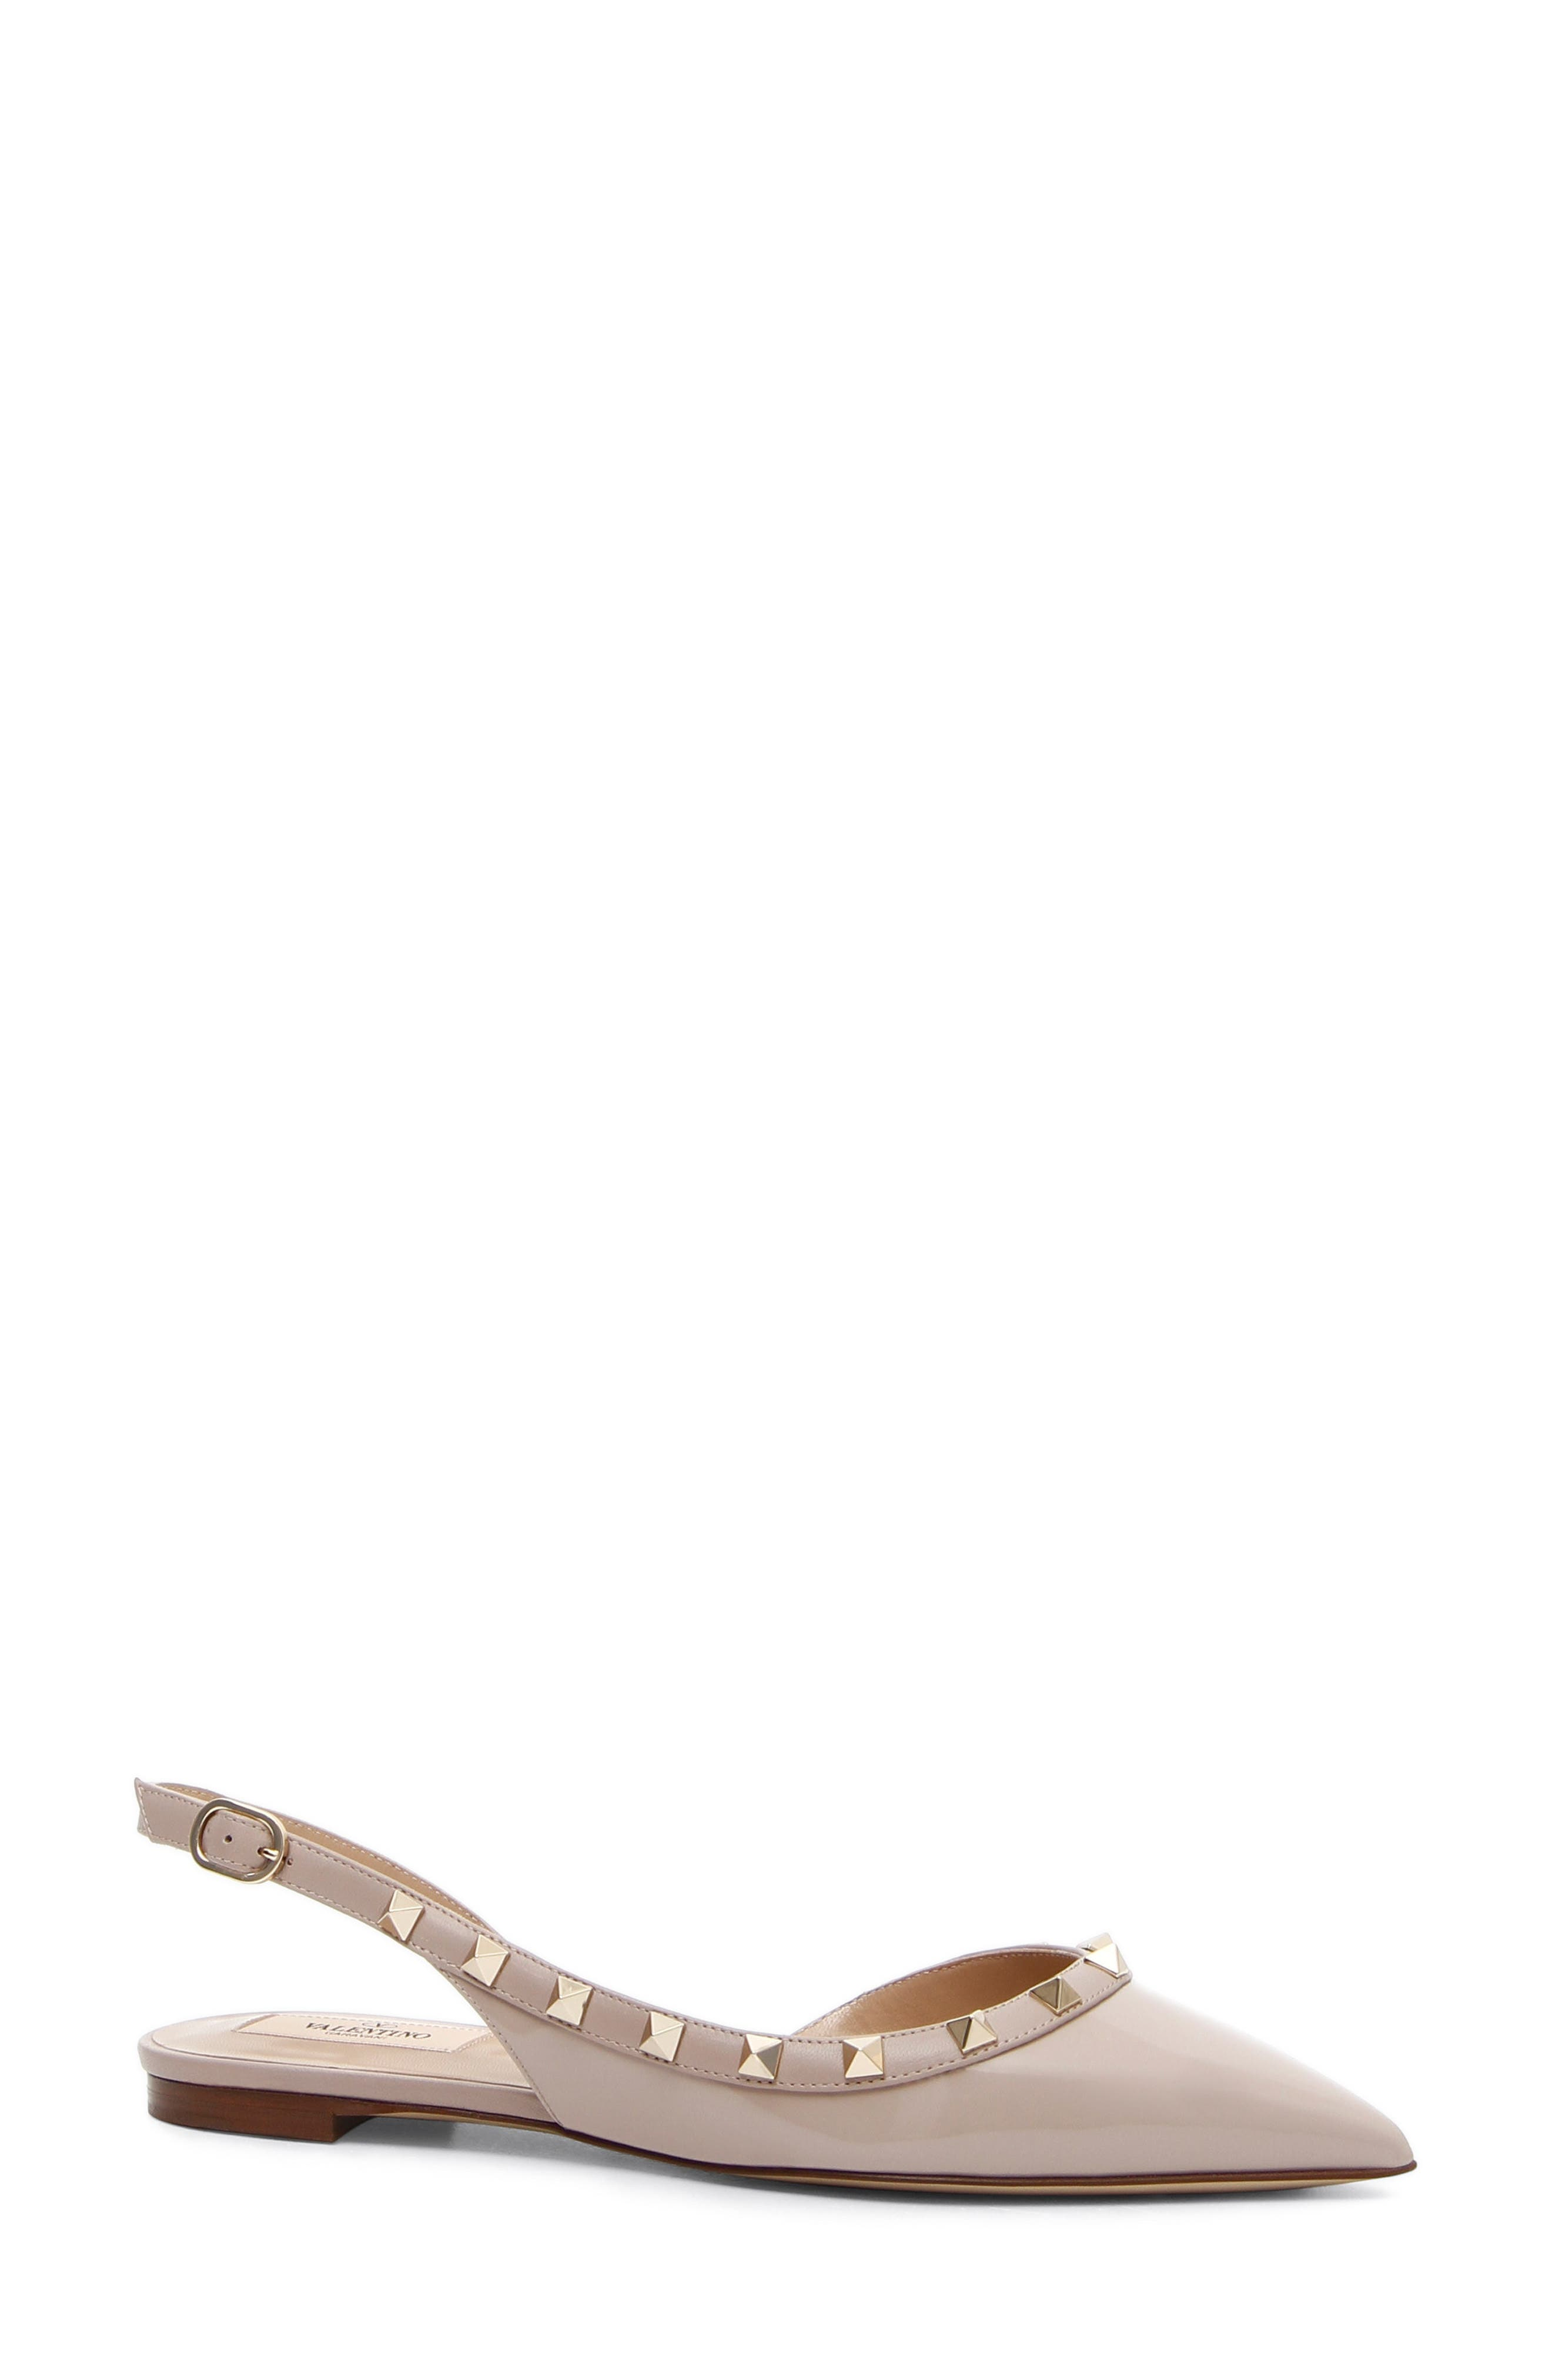 Rockstud Slingback Ballerina Flat,                             Main thumbnail 1, color,                             POUDRE LEATHER